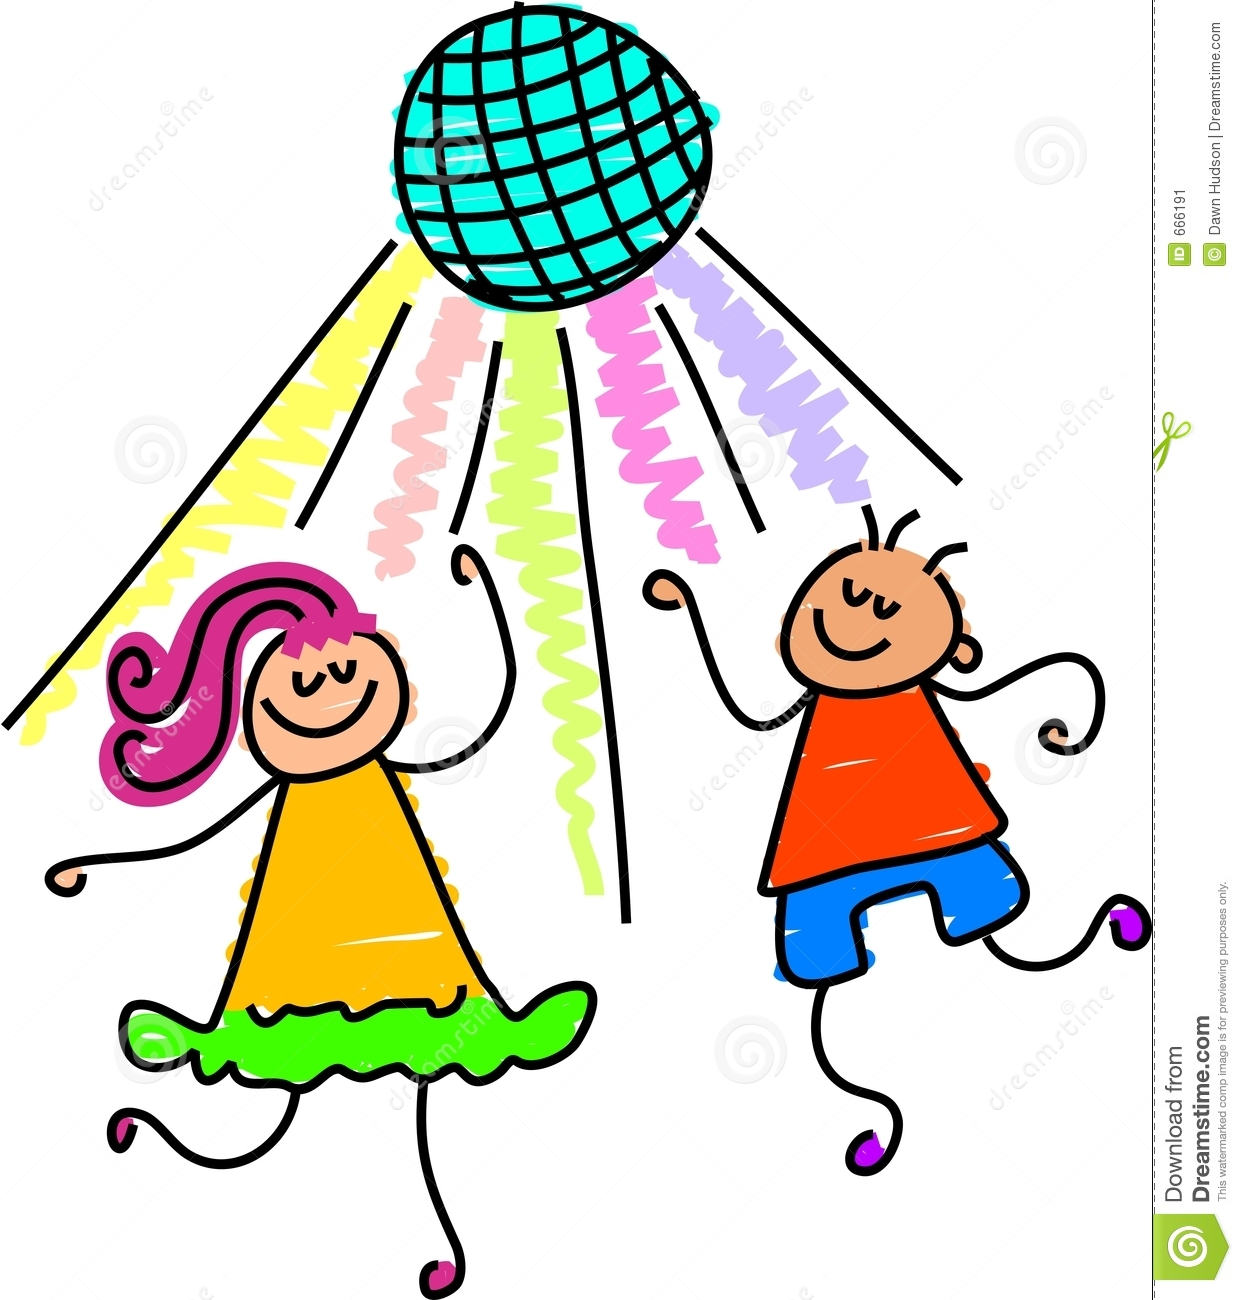 1242x1300 Wondrous Design Kids Dancing Clip Art Children Royalty Free